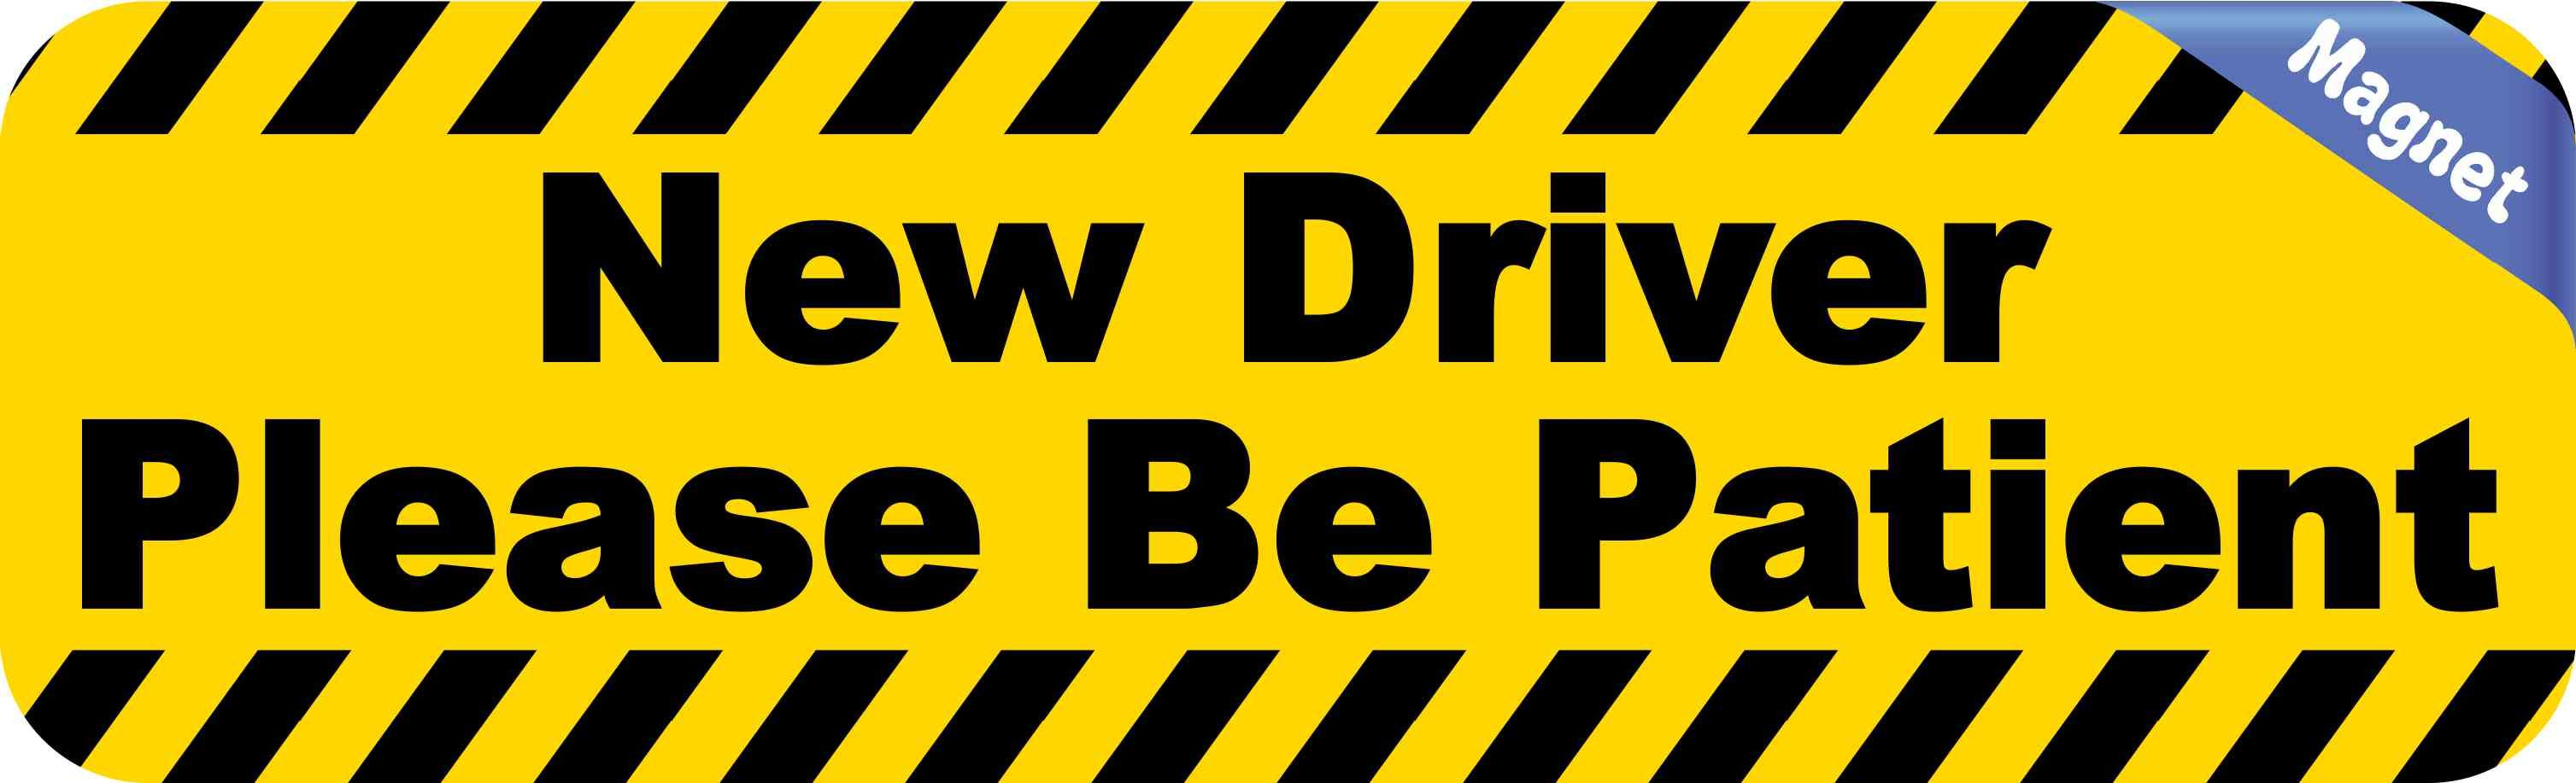 20in X 6in Large New Driver Magnet Magnetic Vehicle Sign Magnets New Drivers Vinyl Sticker Window Decals